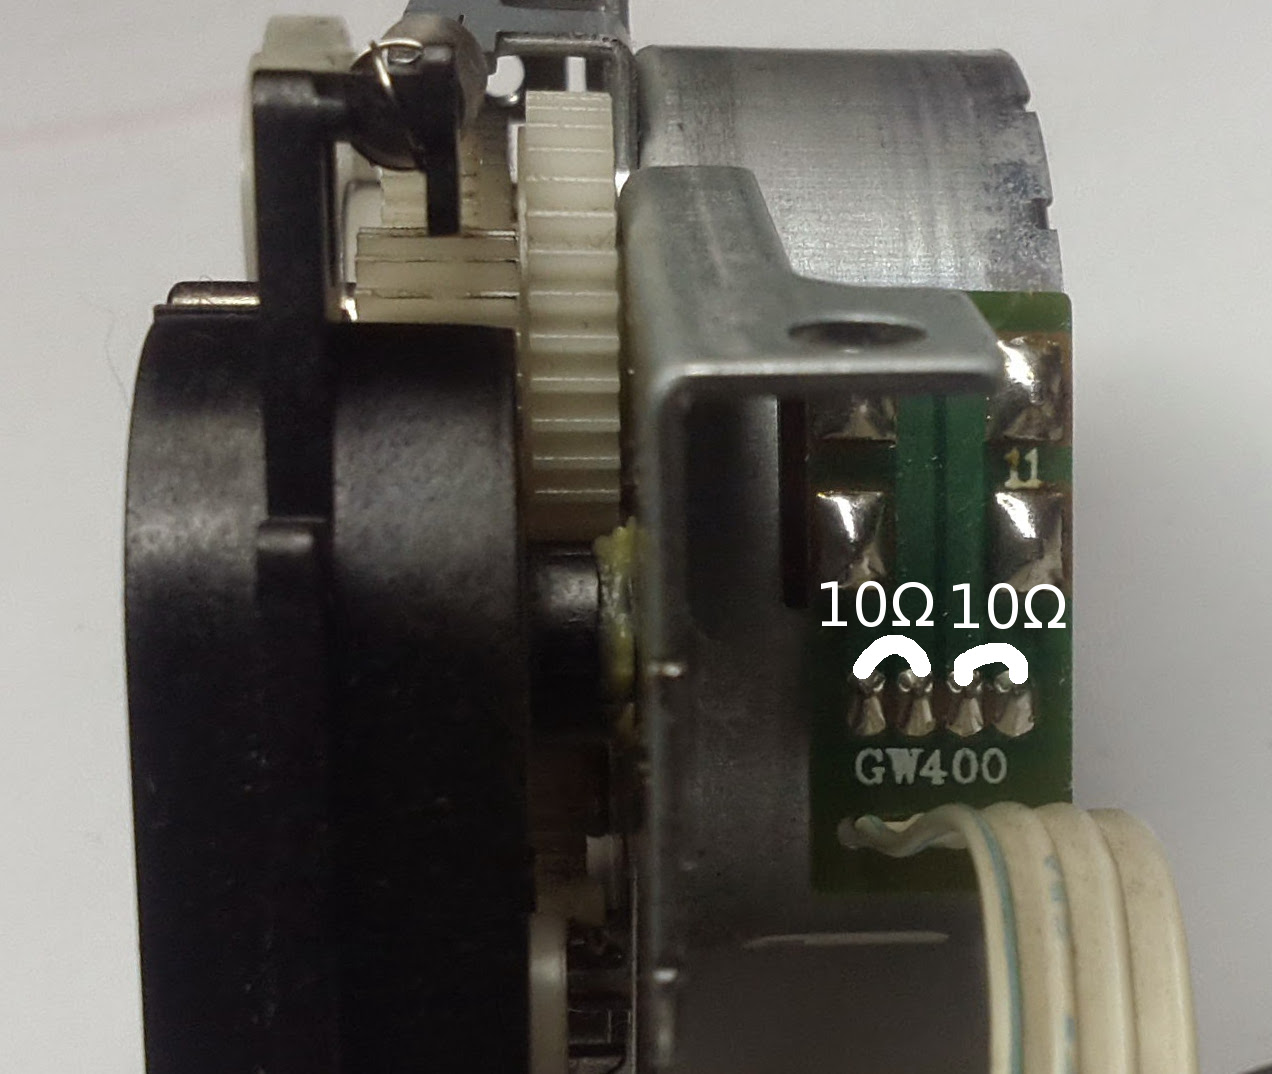 http://blog.rot13.org/2014/11/02/stepper-coils.jpg